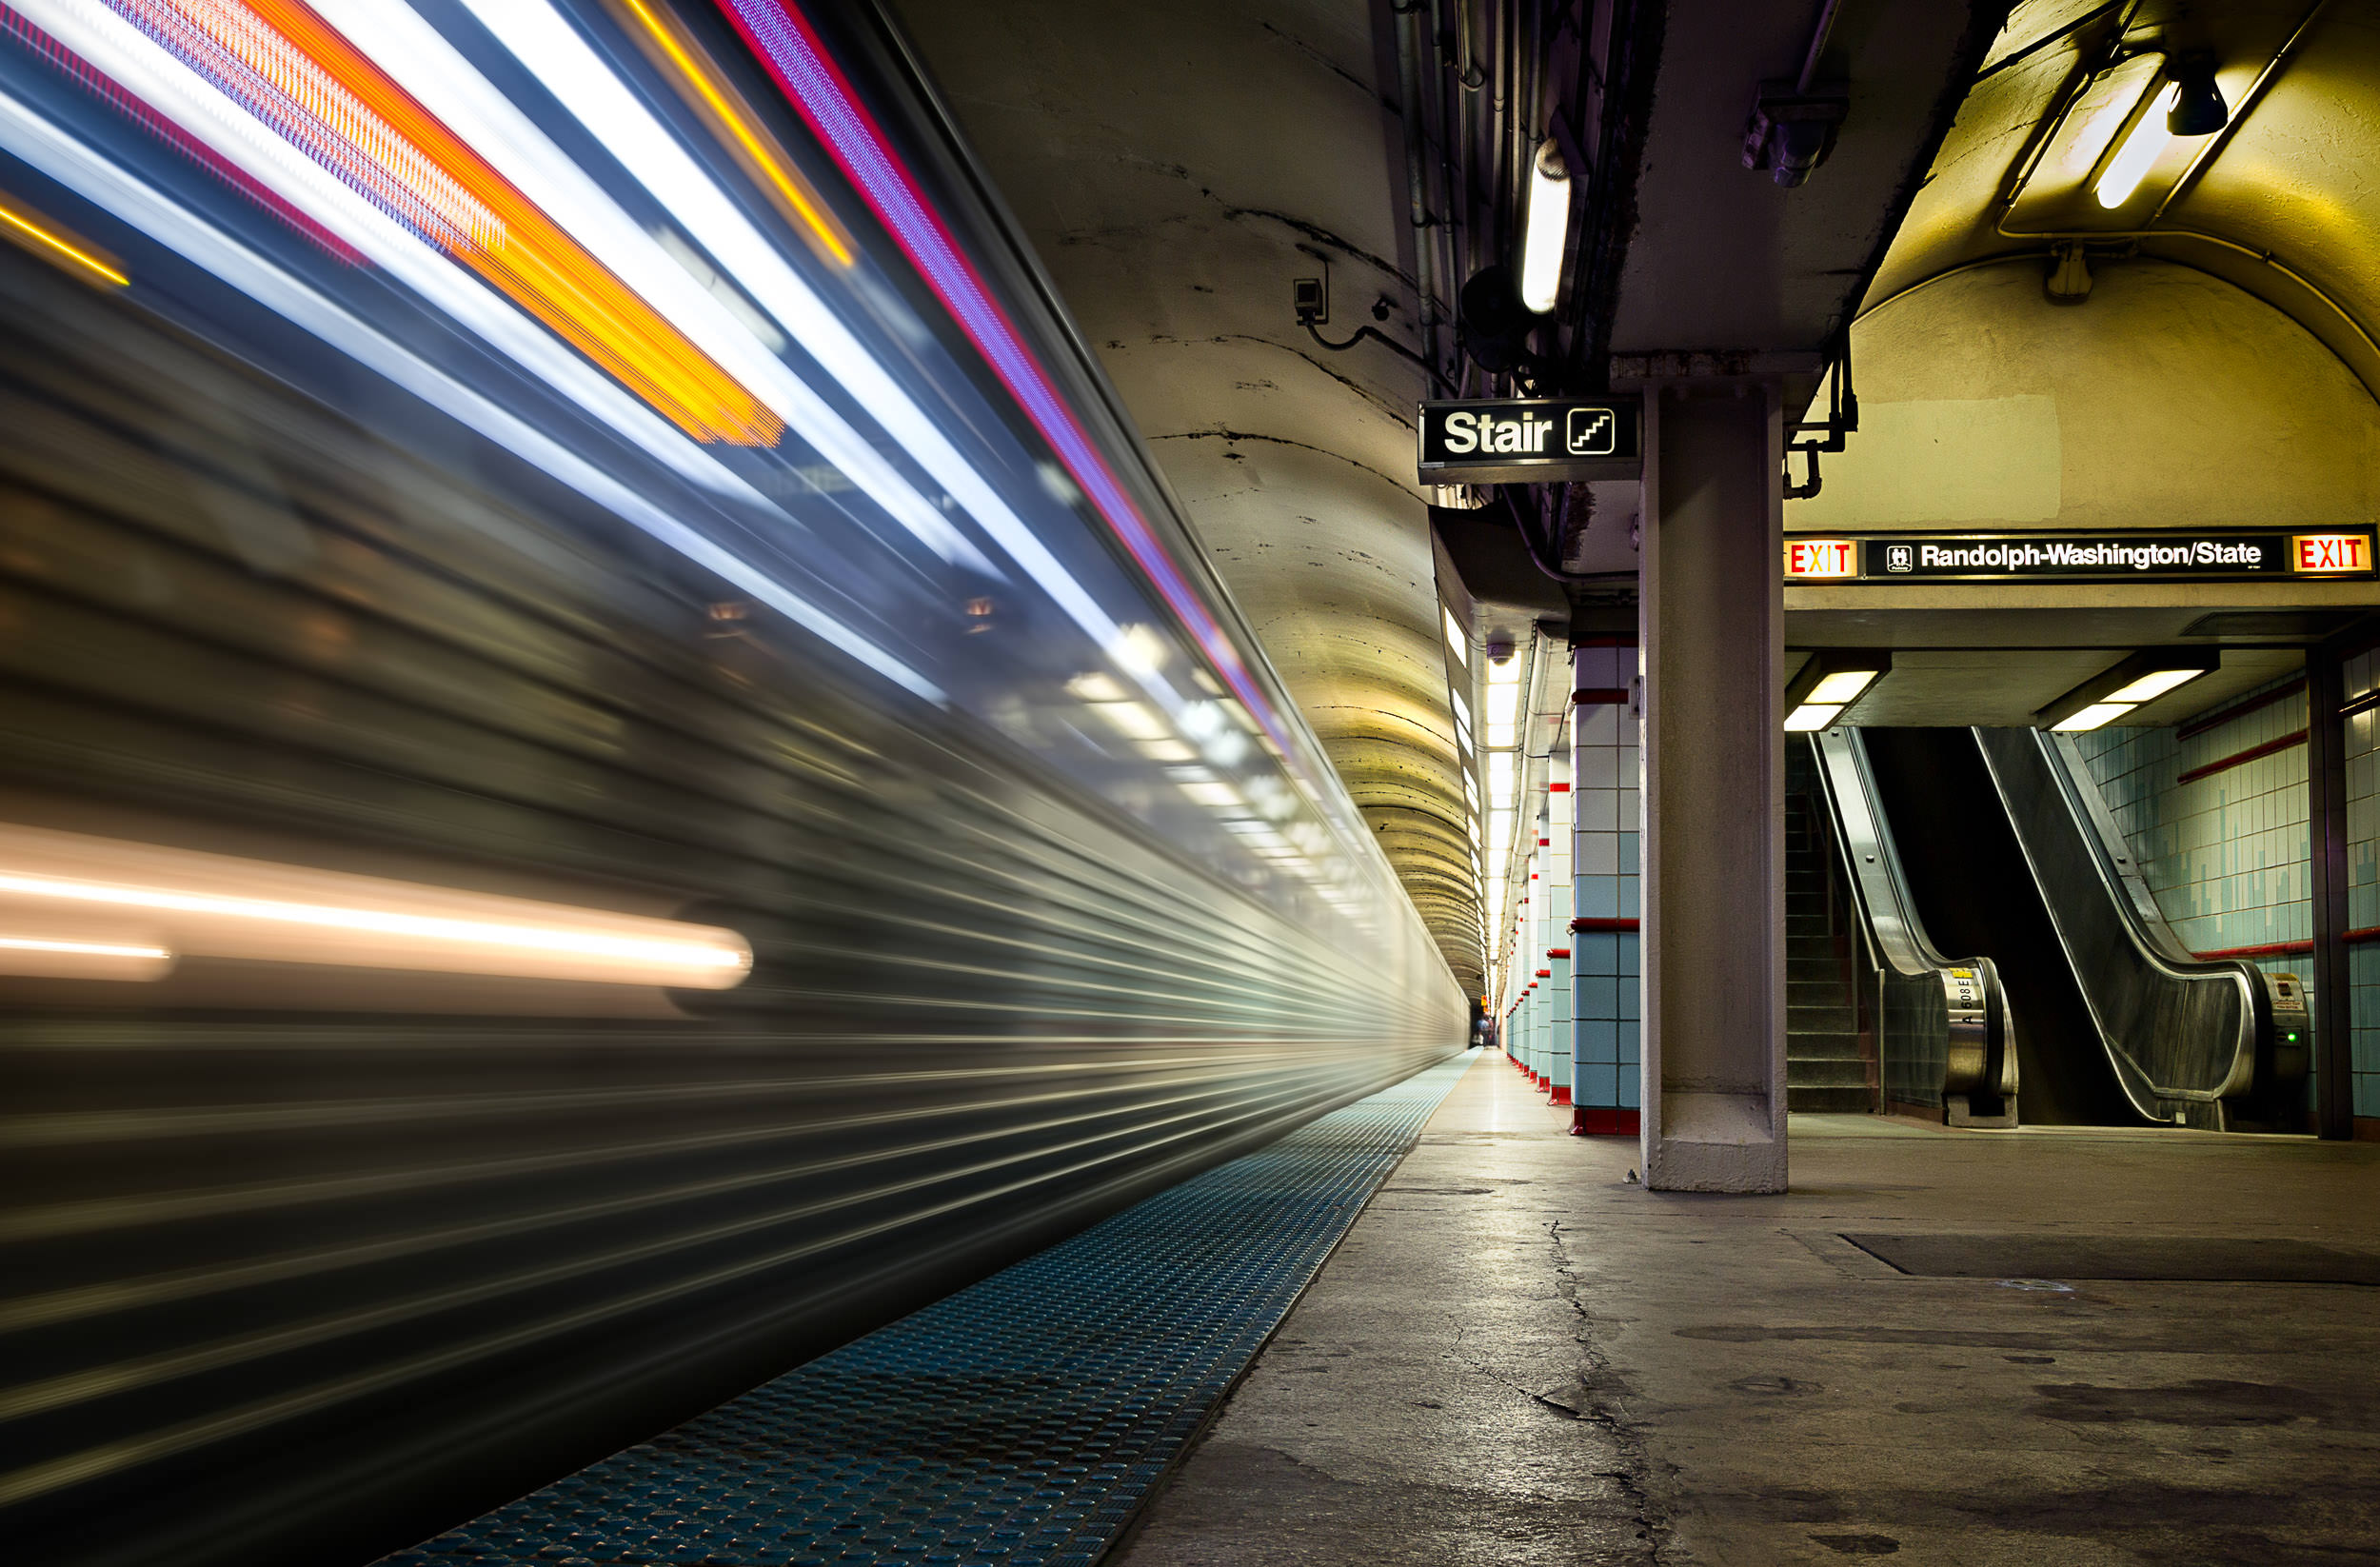 2014.10.01_Chicago_Subway-9171-Edit.jpg